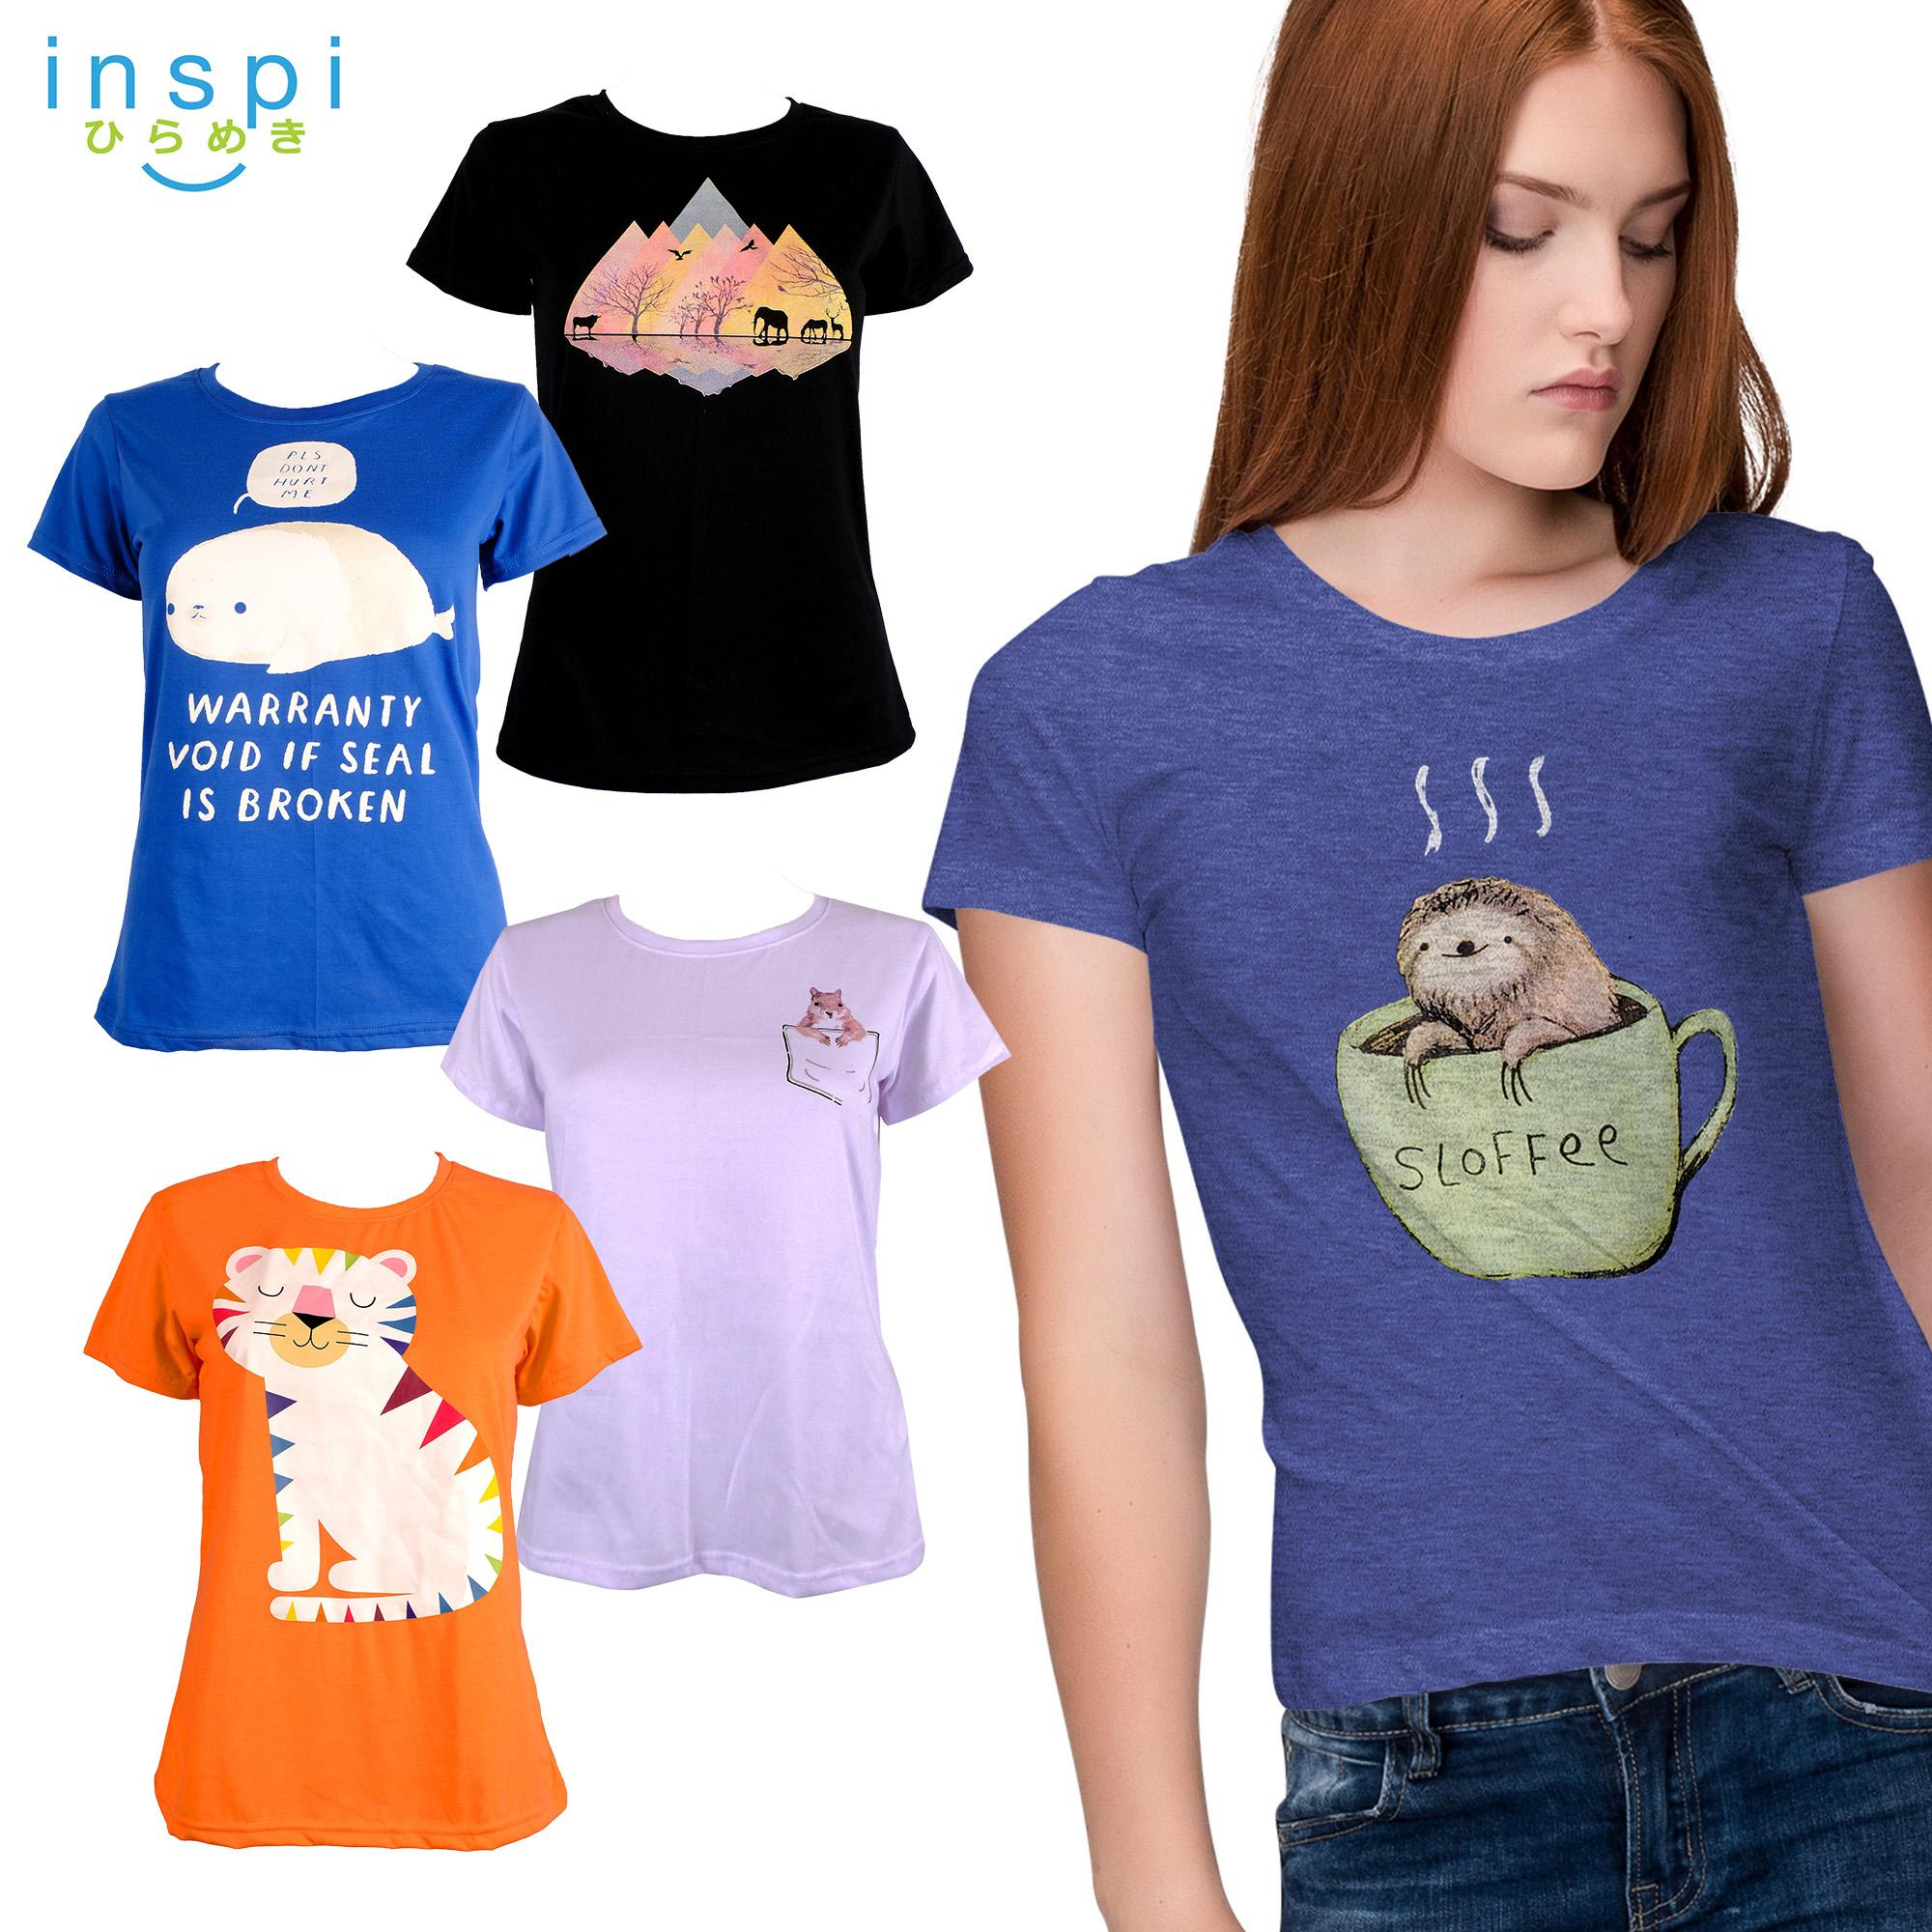 INSPI Tees Ladies Pet Collection tshirt printed graphic tee Ladies t shirt  shirts women tshirts for 71004242a229